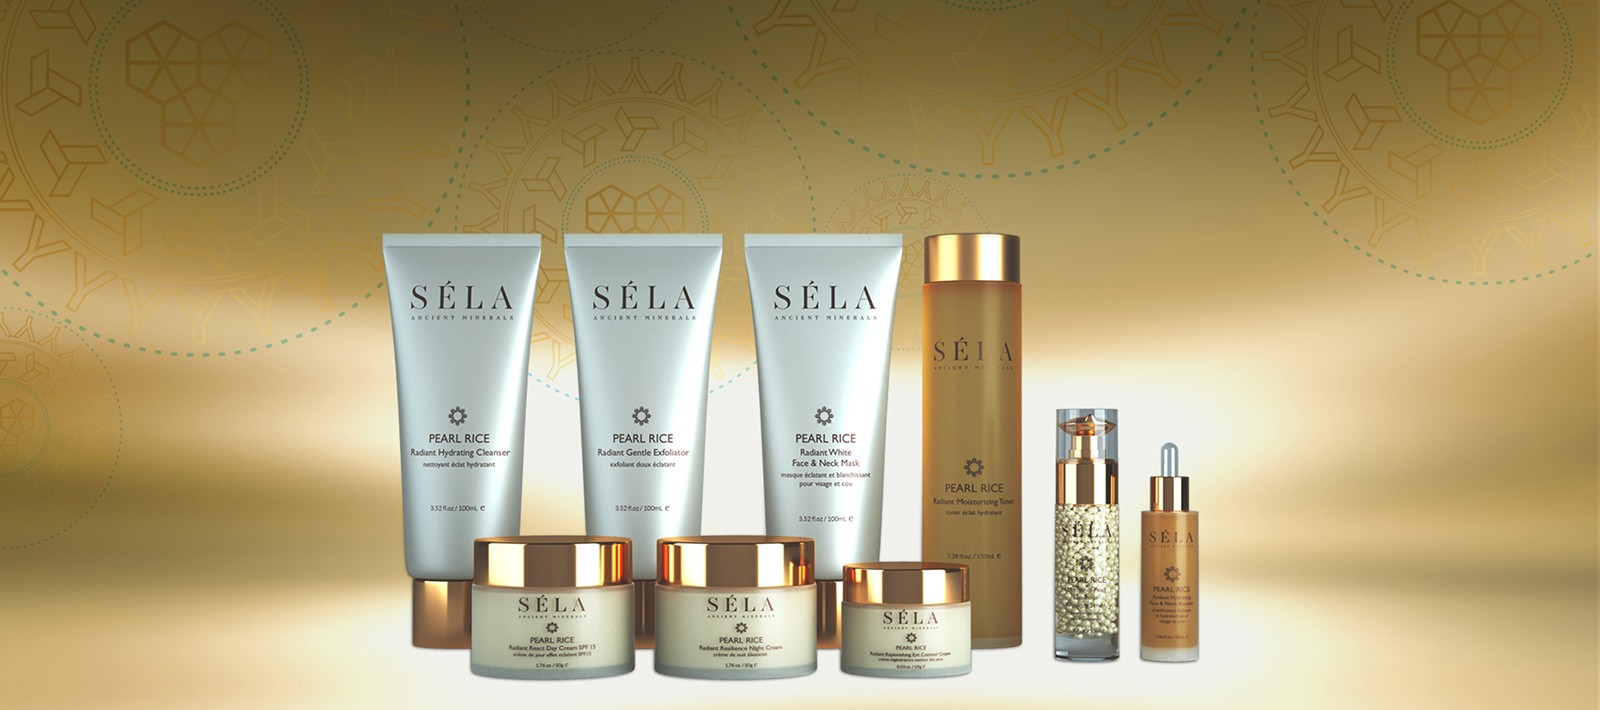 Sela-skincare-brand-creation-2